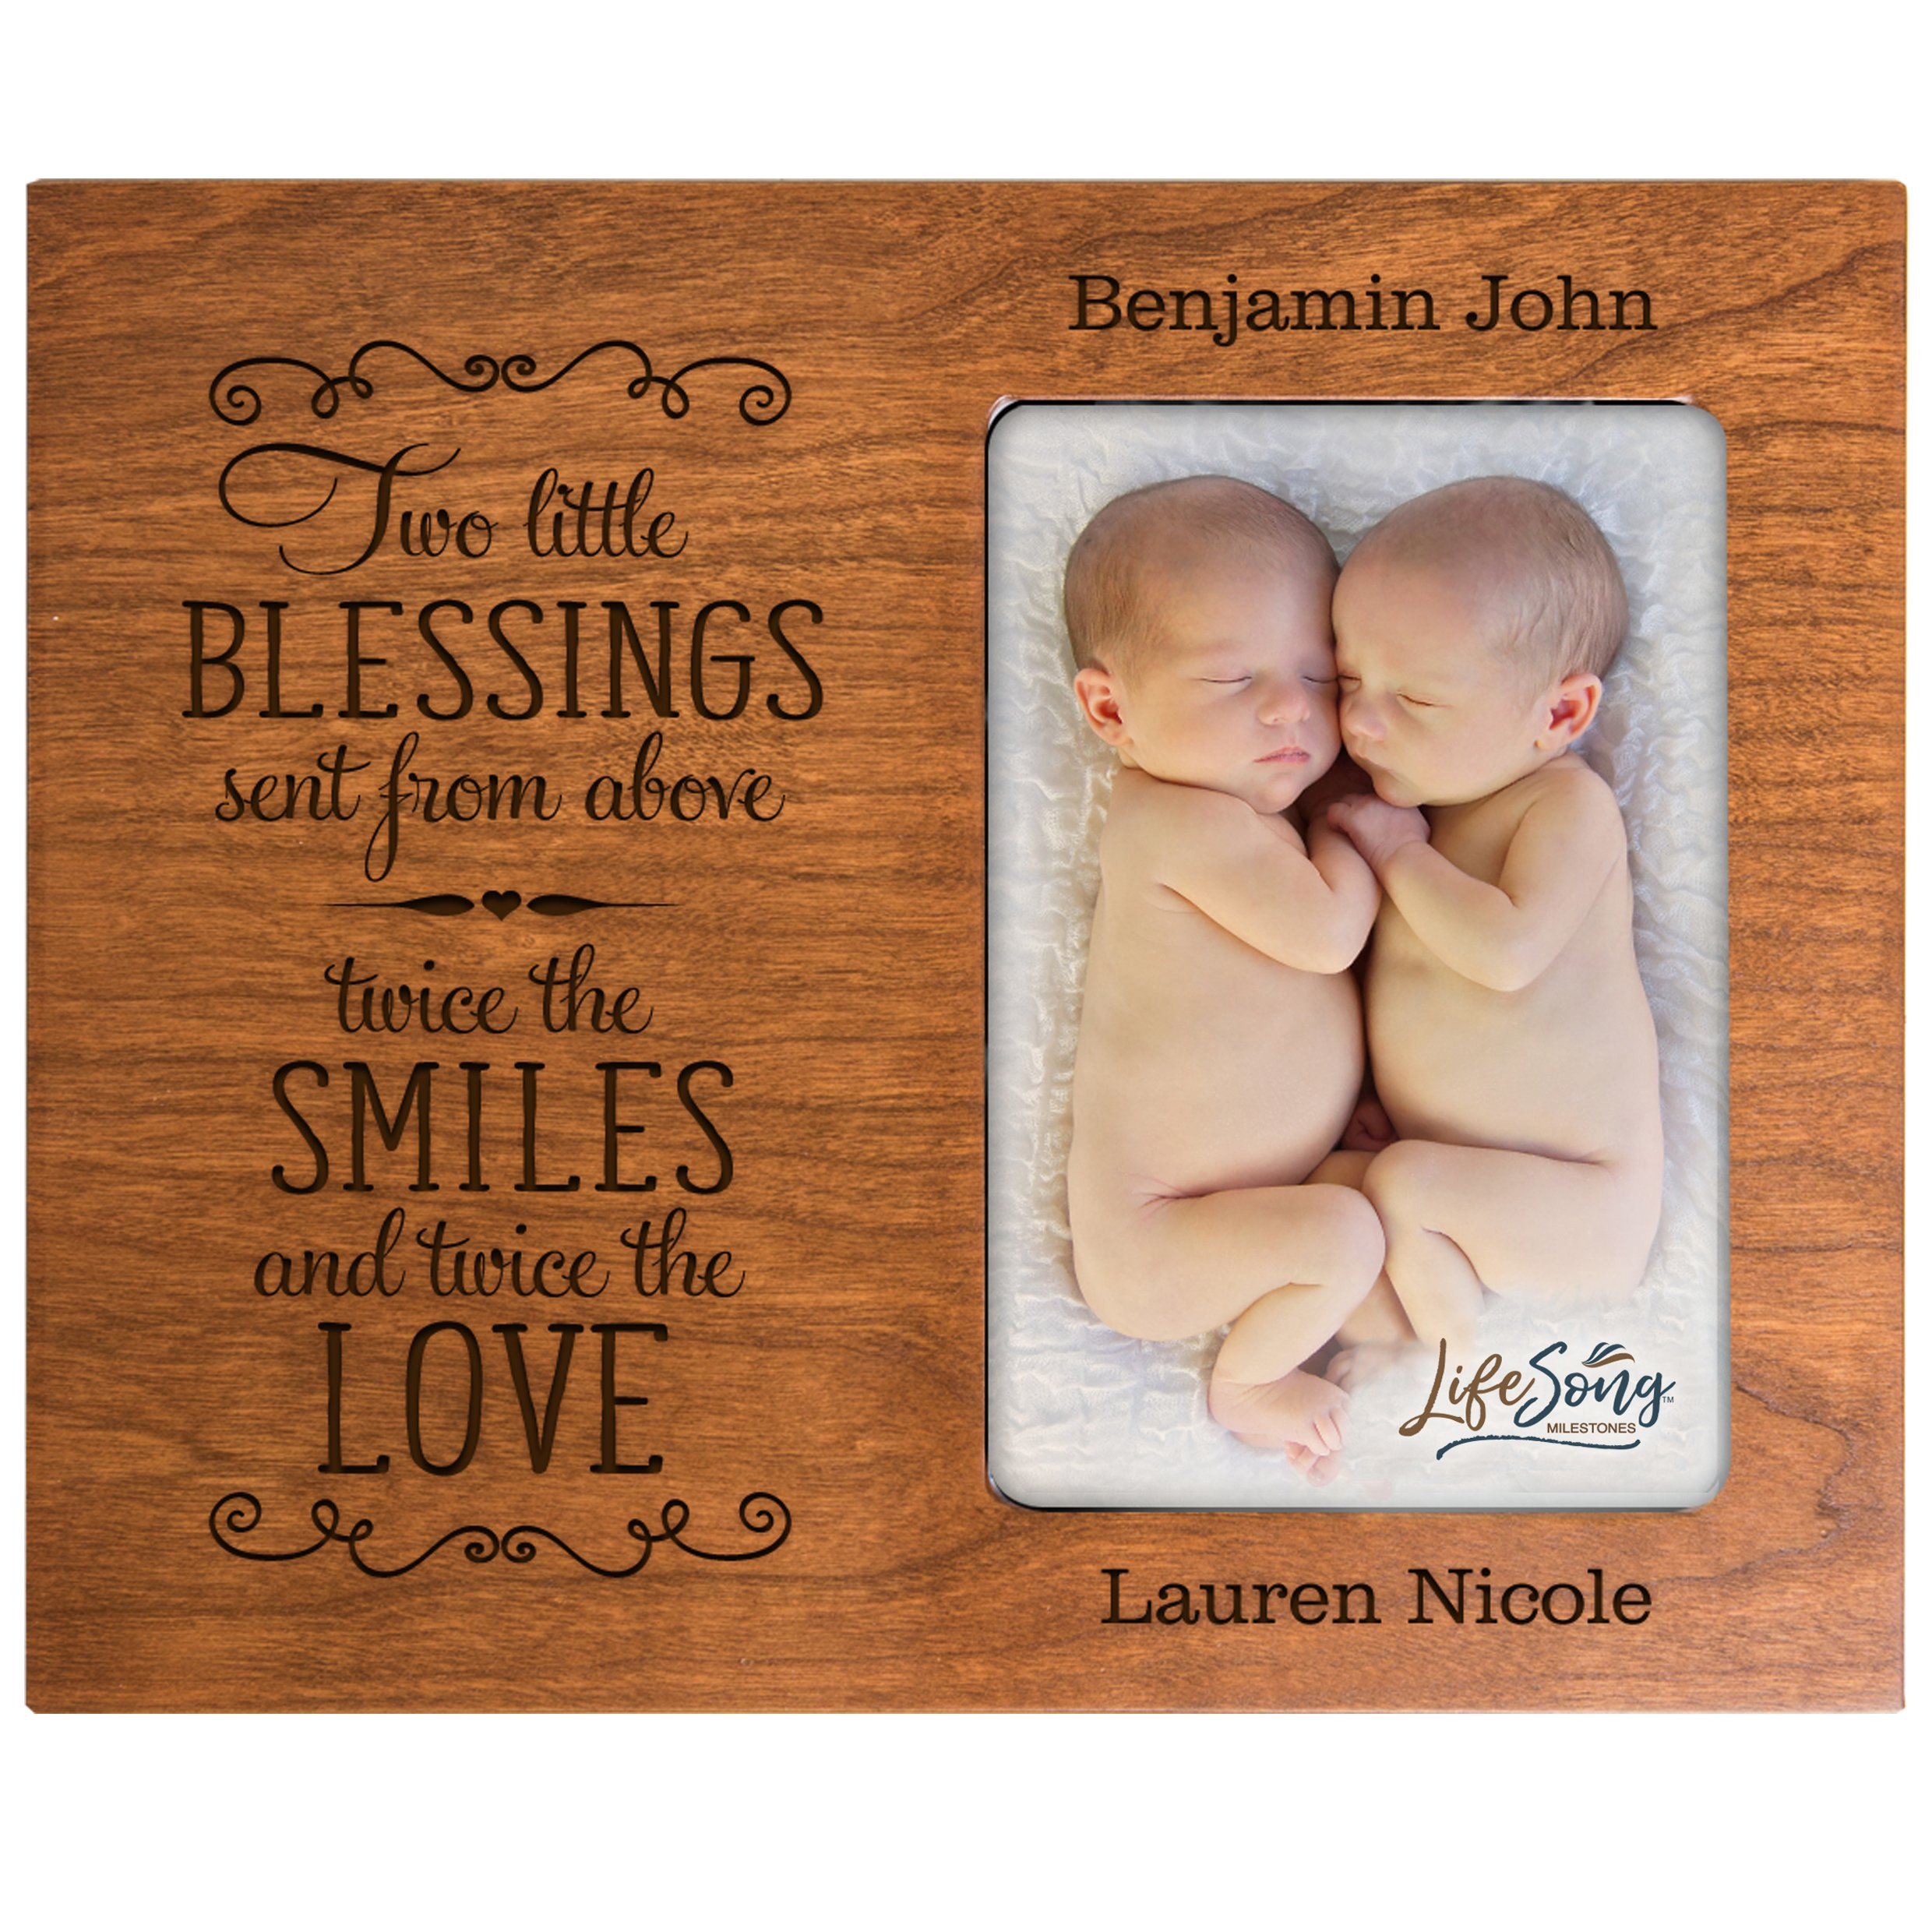 LifeSong Milestones Personalized New Baby Gifts for Twins Picture Frame for Boys and Girls Custom Engraved Photo Frame for New Parents Nana,Mimi and Grandparents (Cherry)